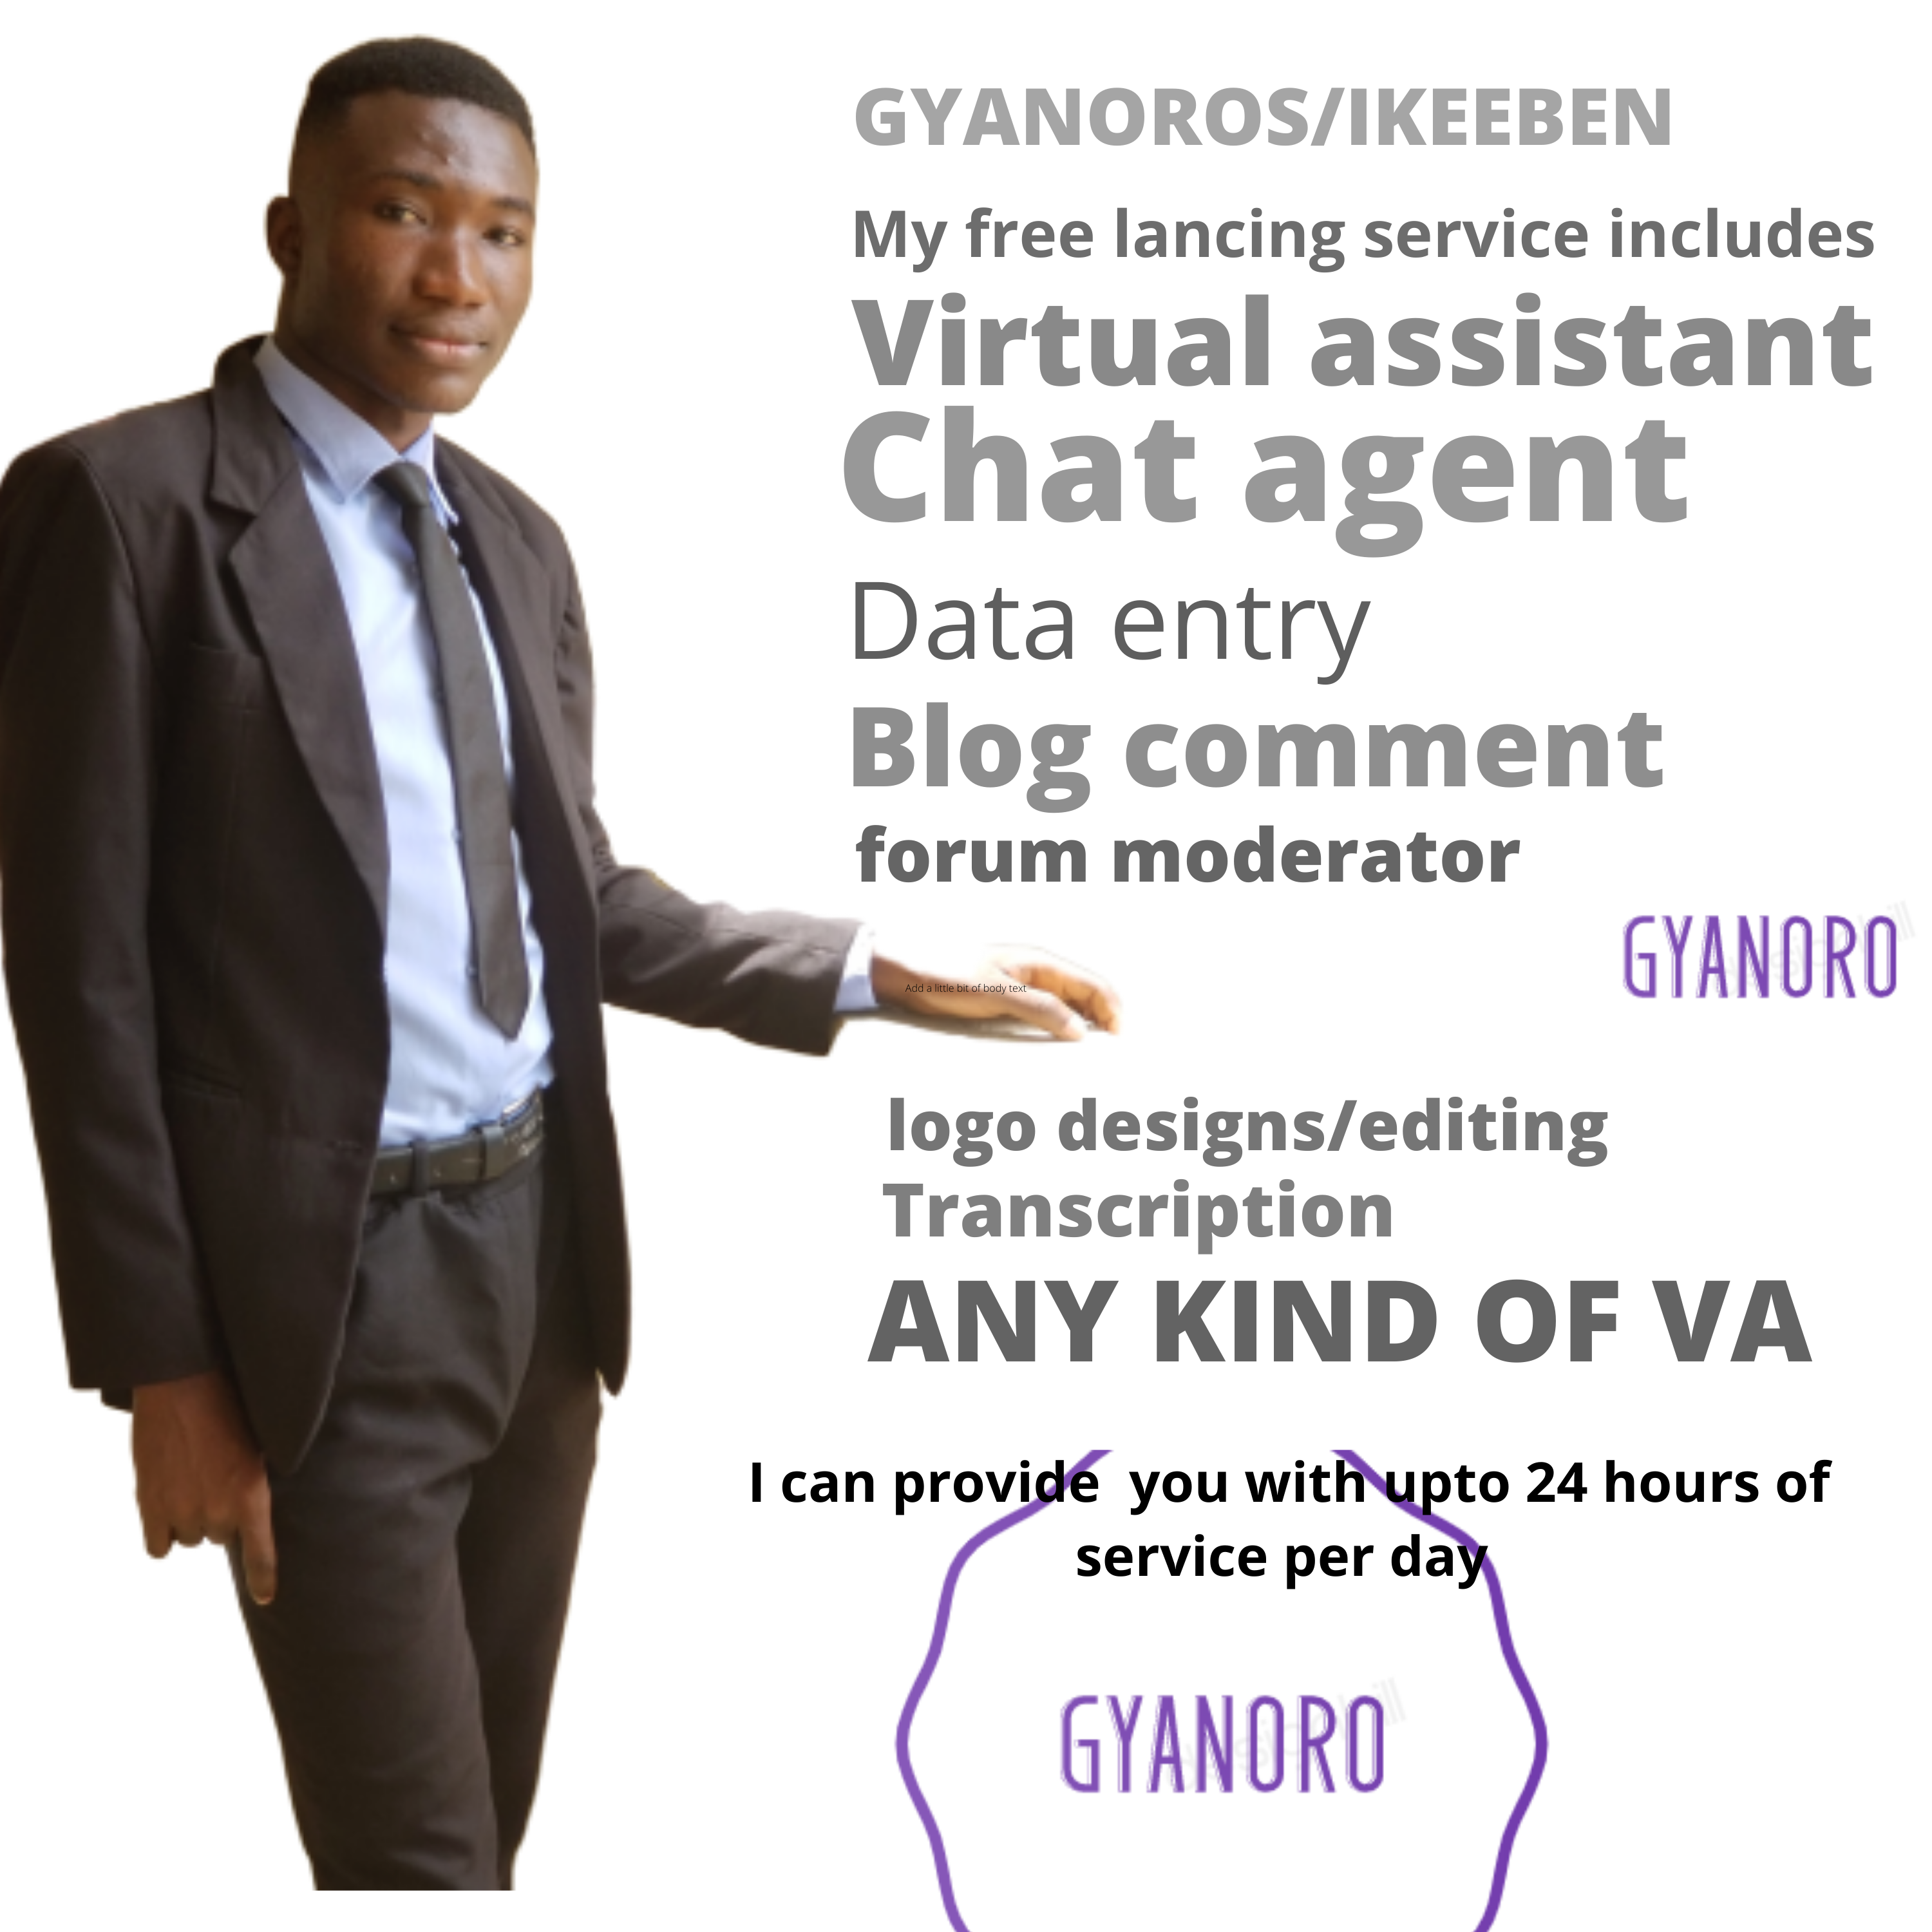 I will be your virtual assistant 0.5 to 1 usd per hour